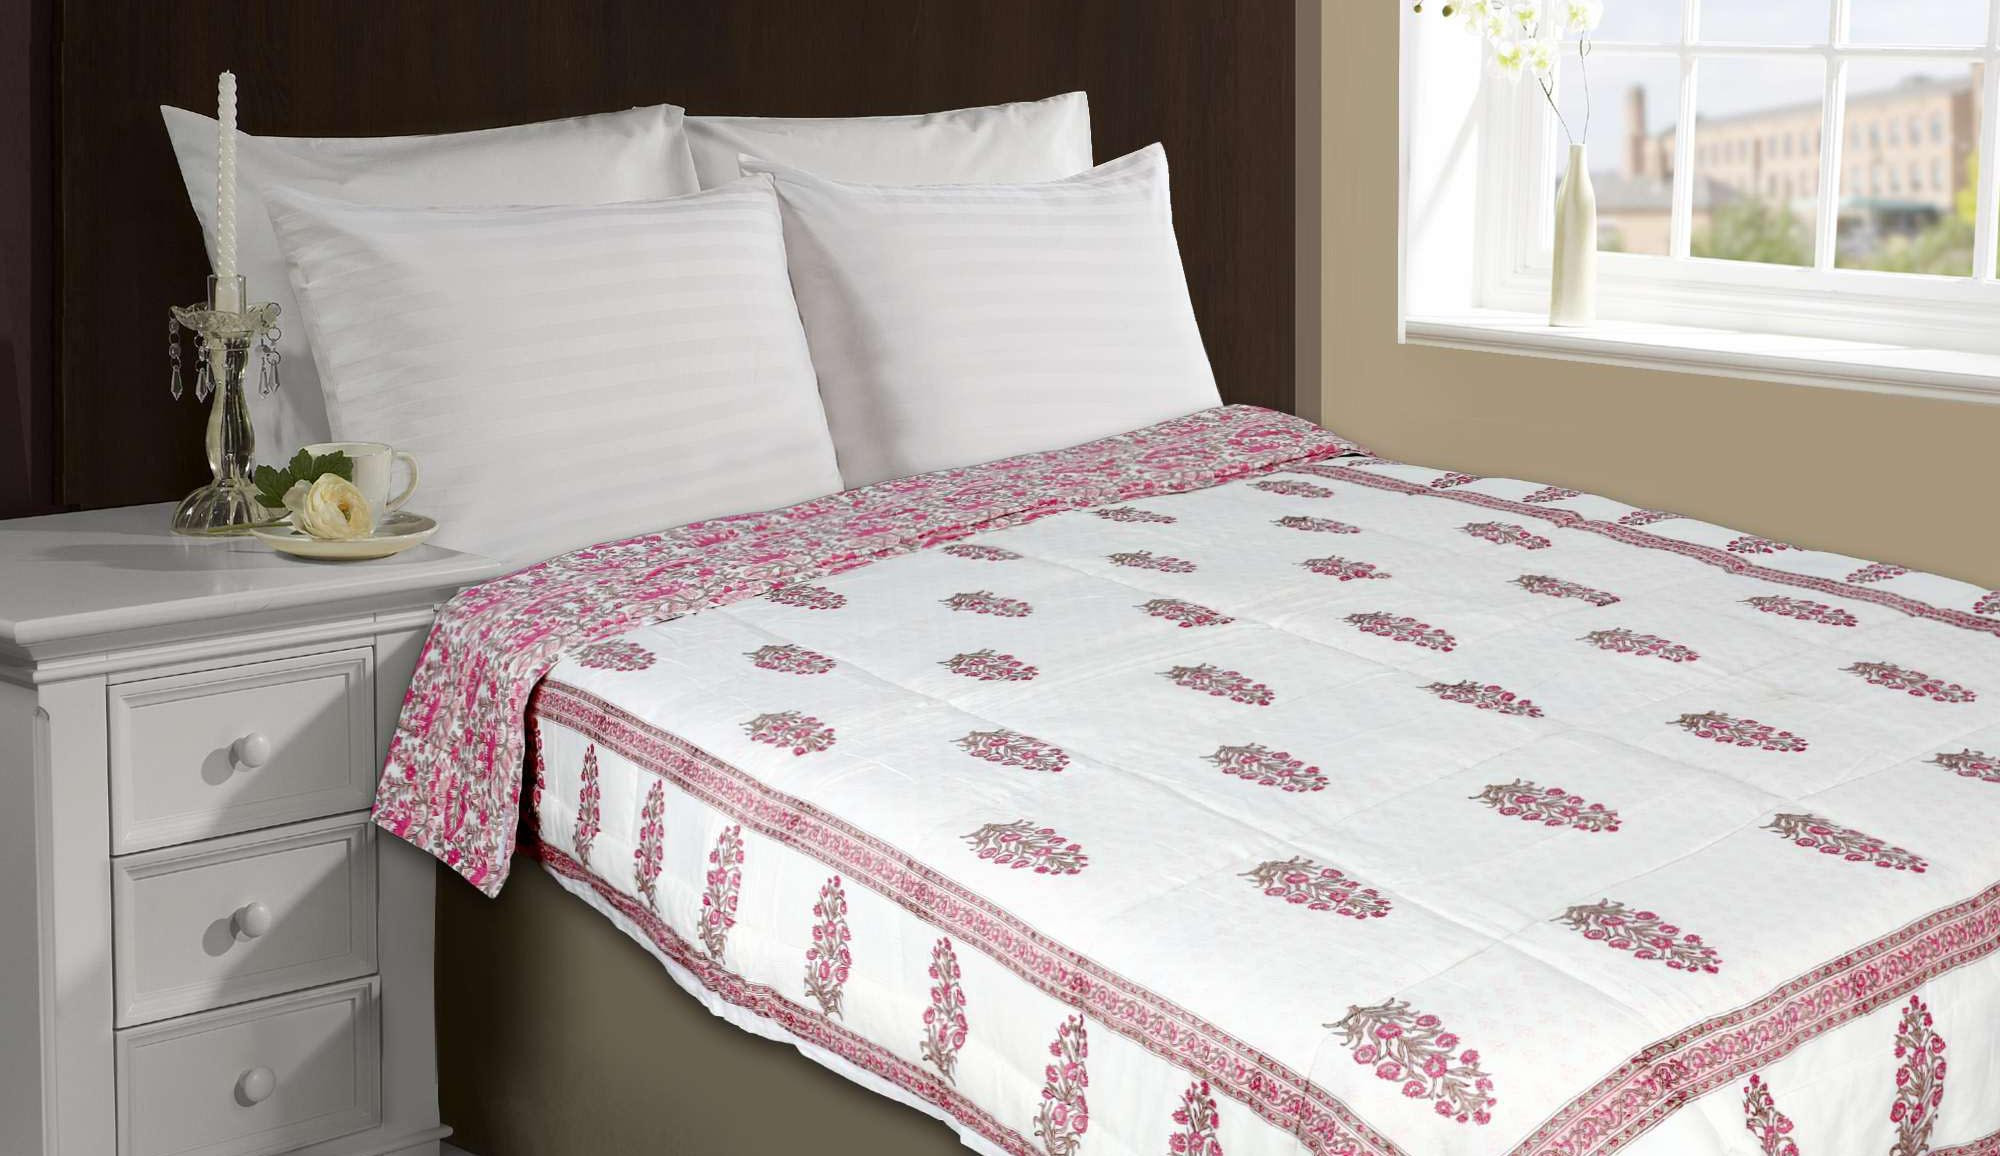 Handmade bed sheets design - Handmade Set Of Razai